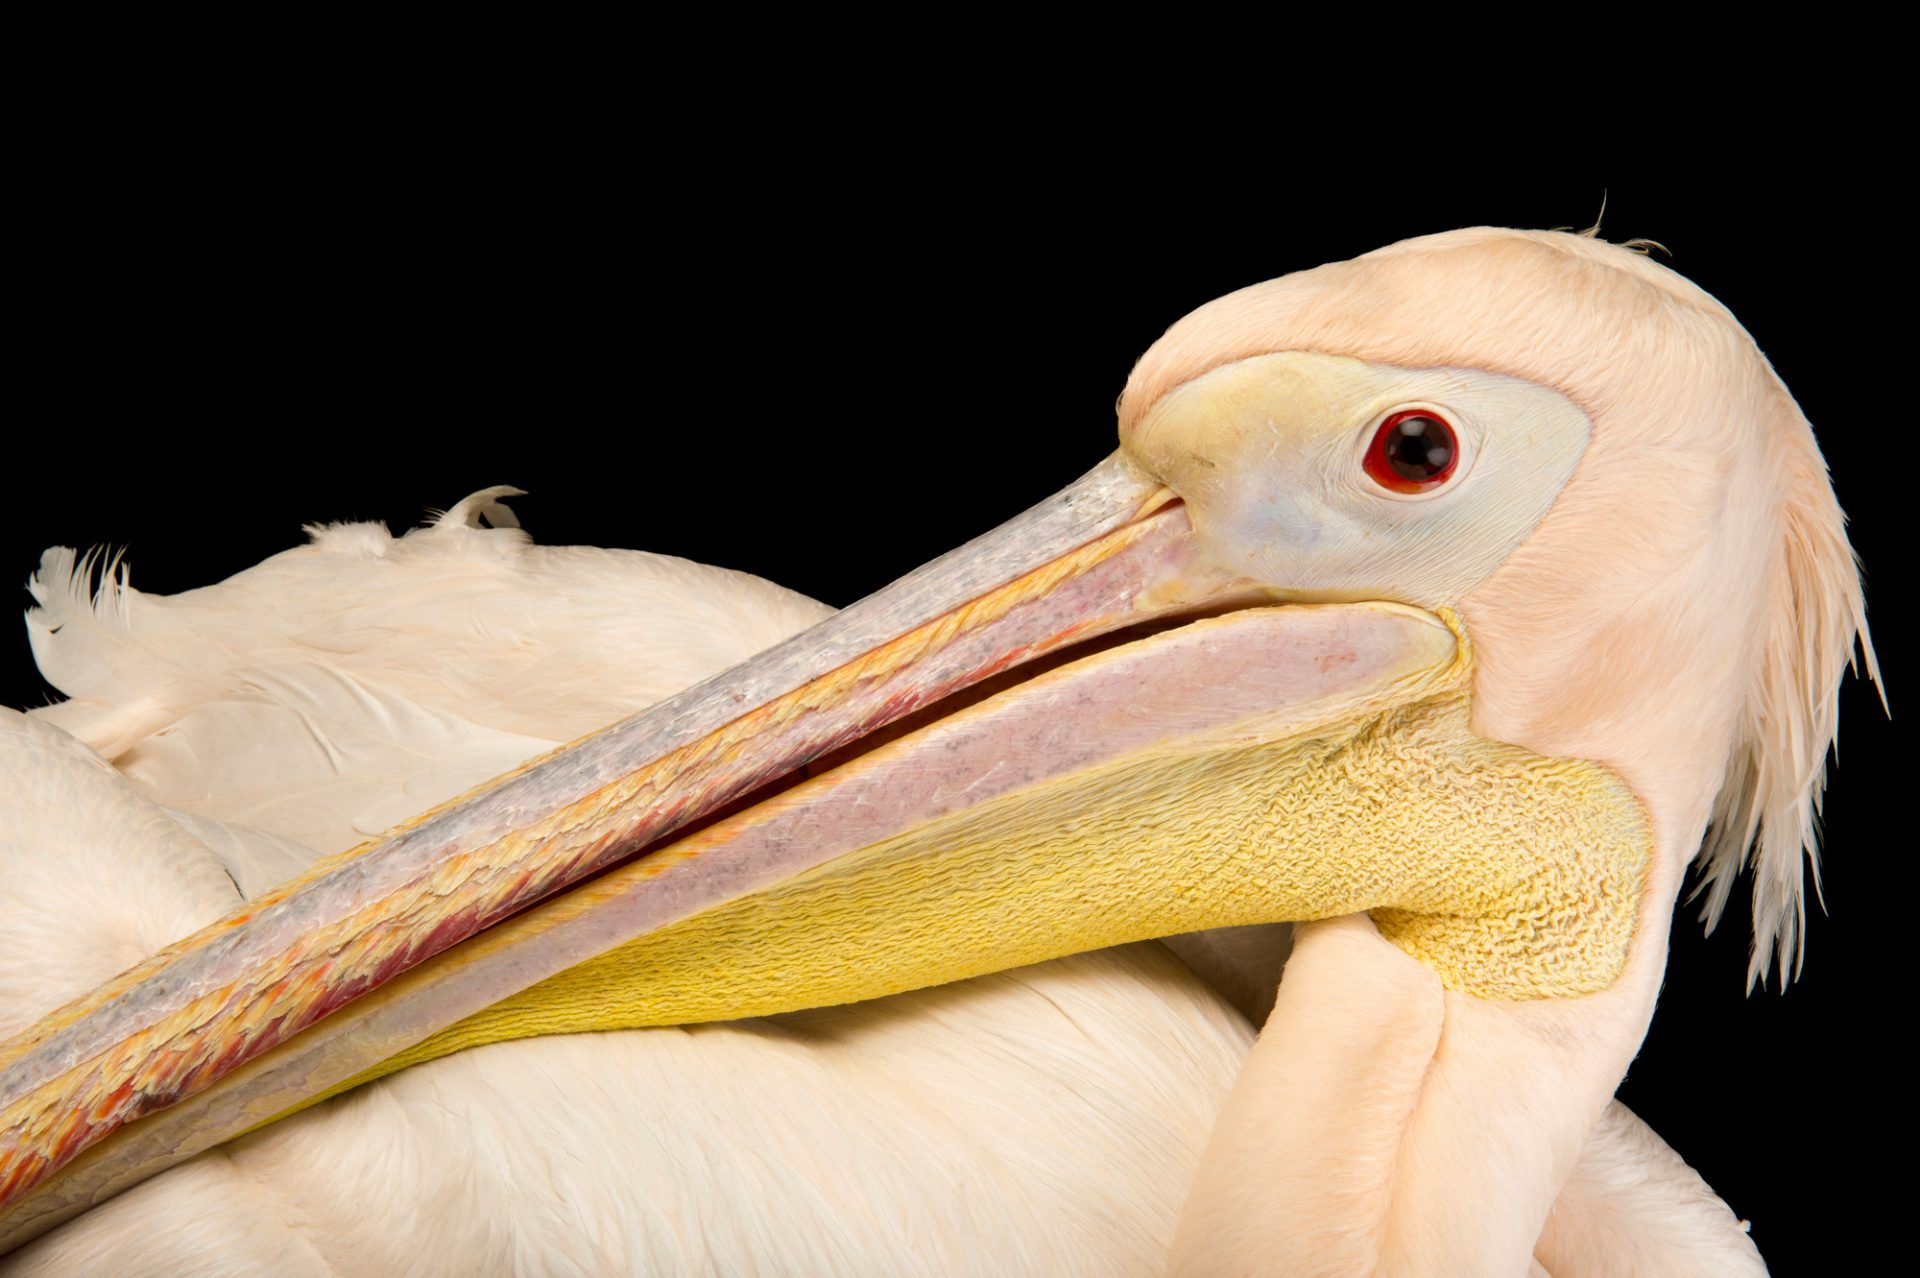 Photo: Great white or rosy pelican (Pelecanus onocrotalus) at Kamla Nehru Zoological Garden, Ahmedabad, India.